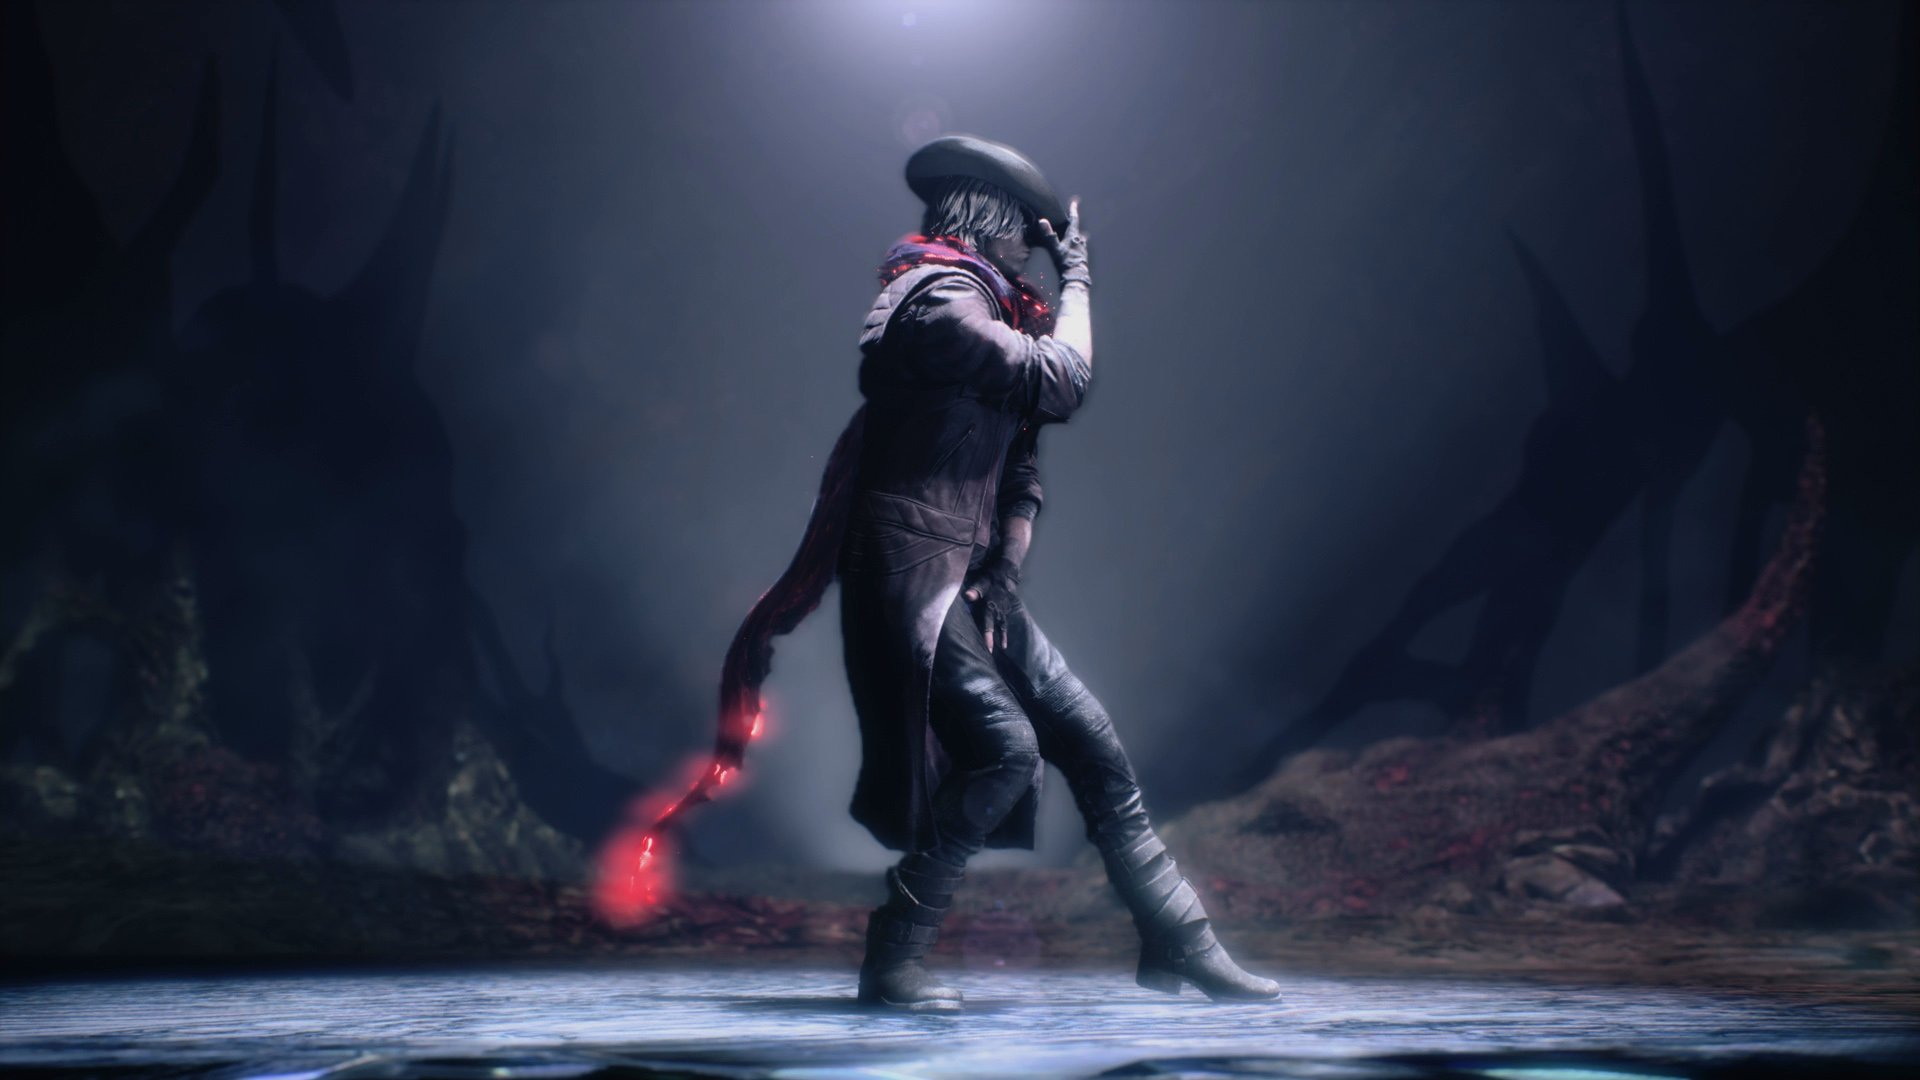 Devil May Cry 5 Dante skills and abilities